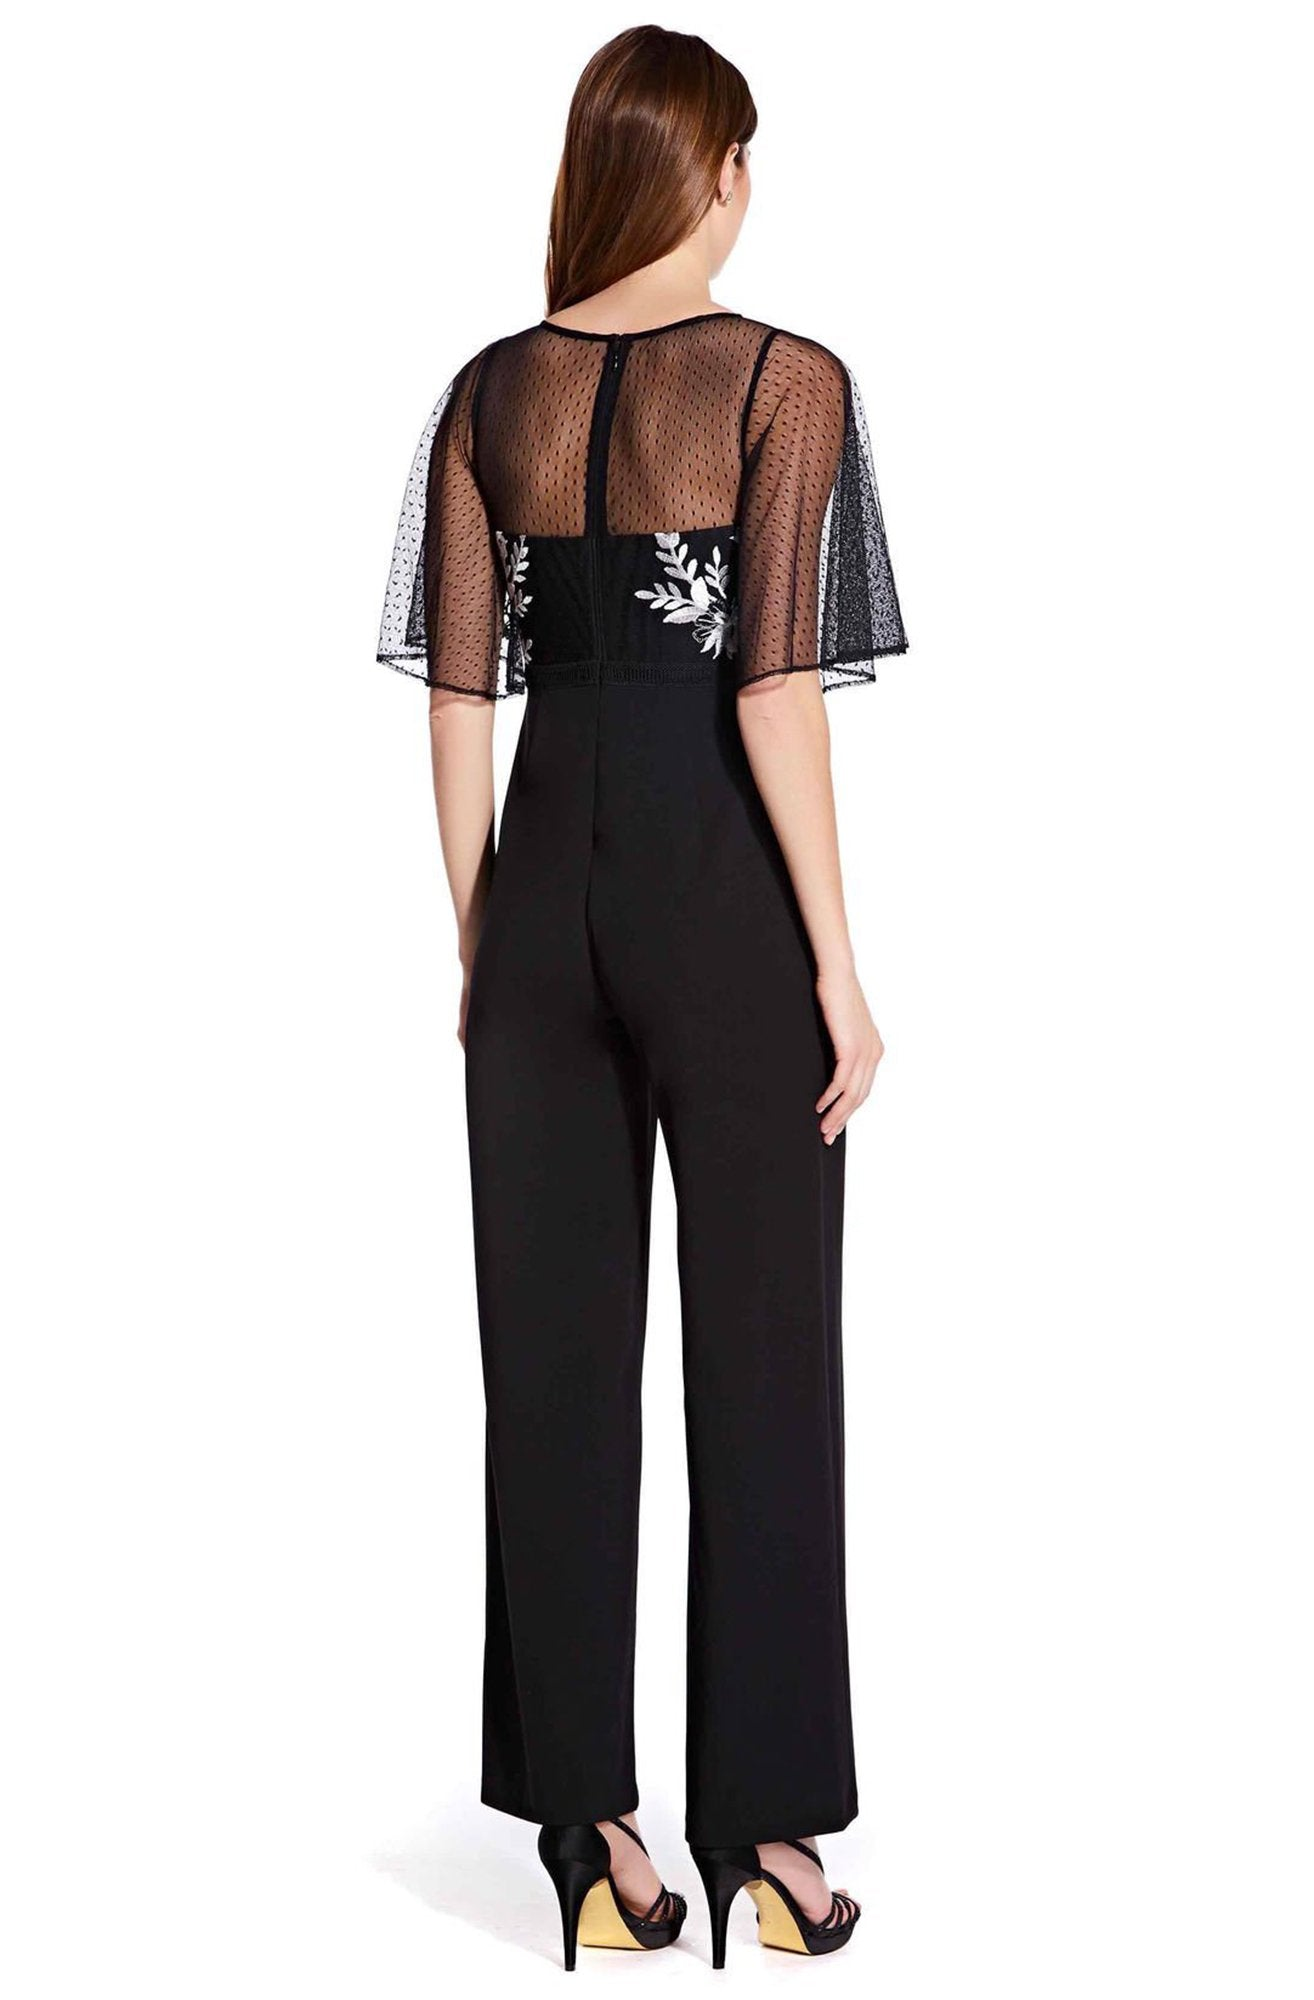 Adrianna Papell - AP1E205755 Floral Embroidered Jumpsuit In Black and White